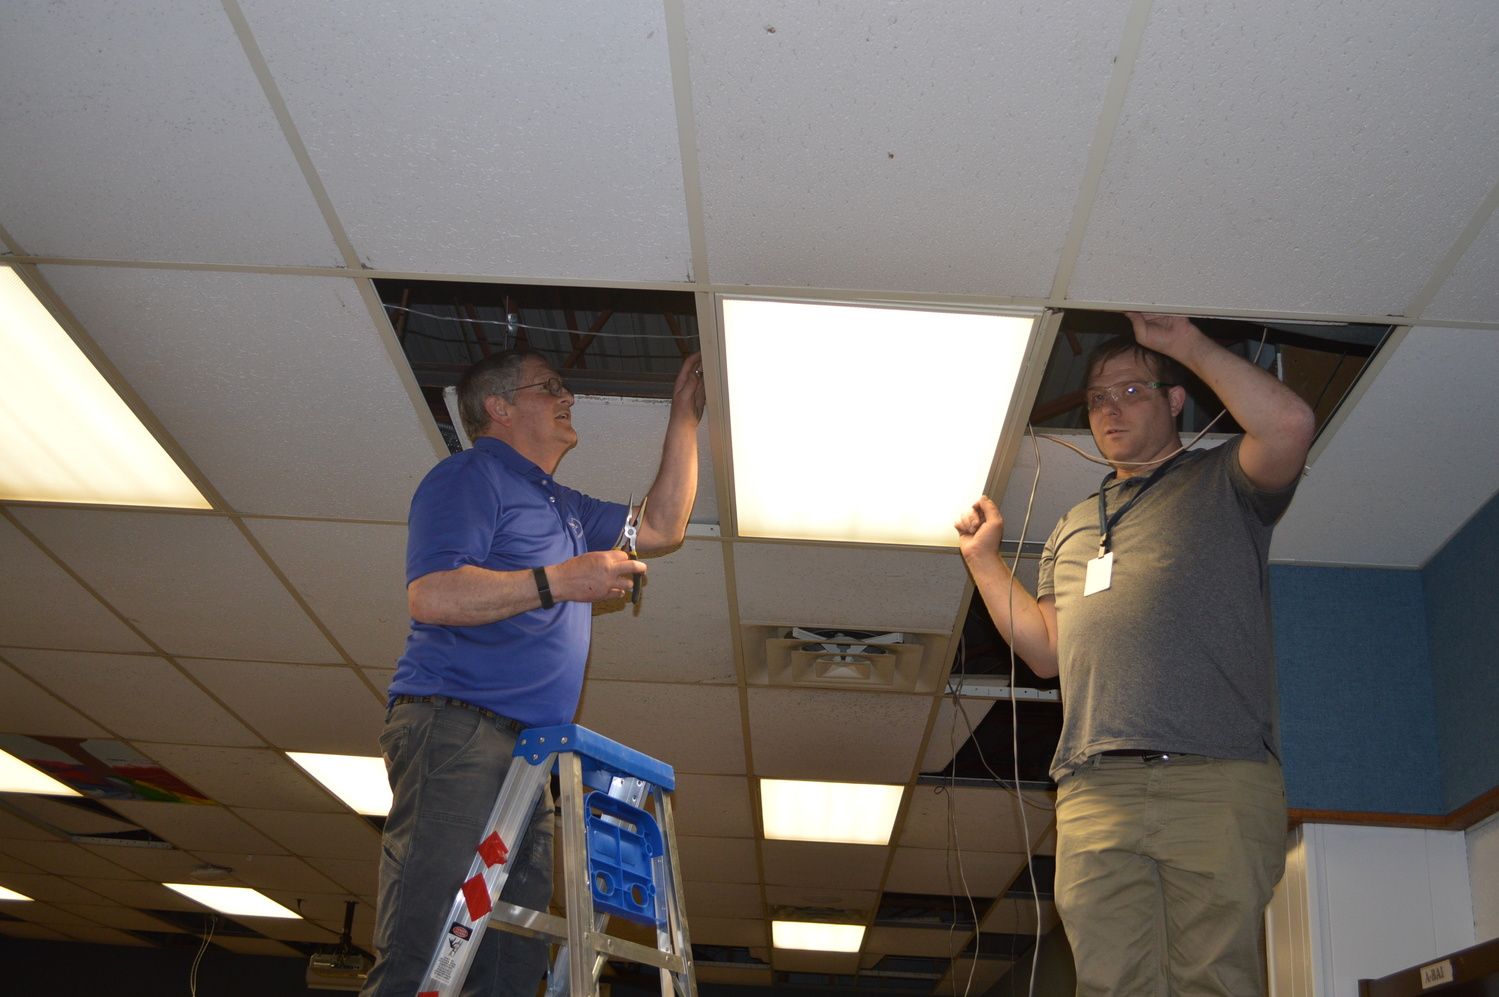 Tom Young and Chris Tipton installing hearing loop wire above the ceiling.